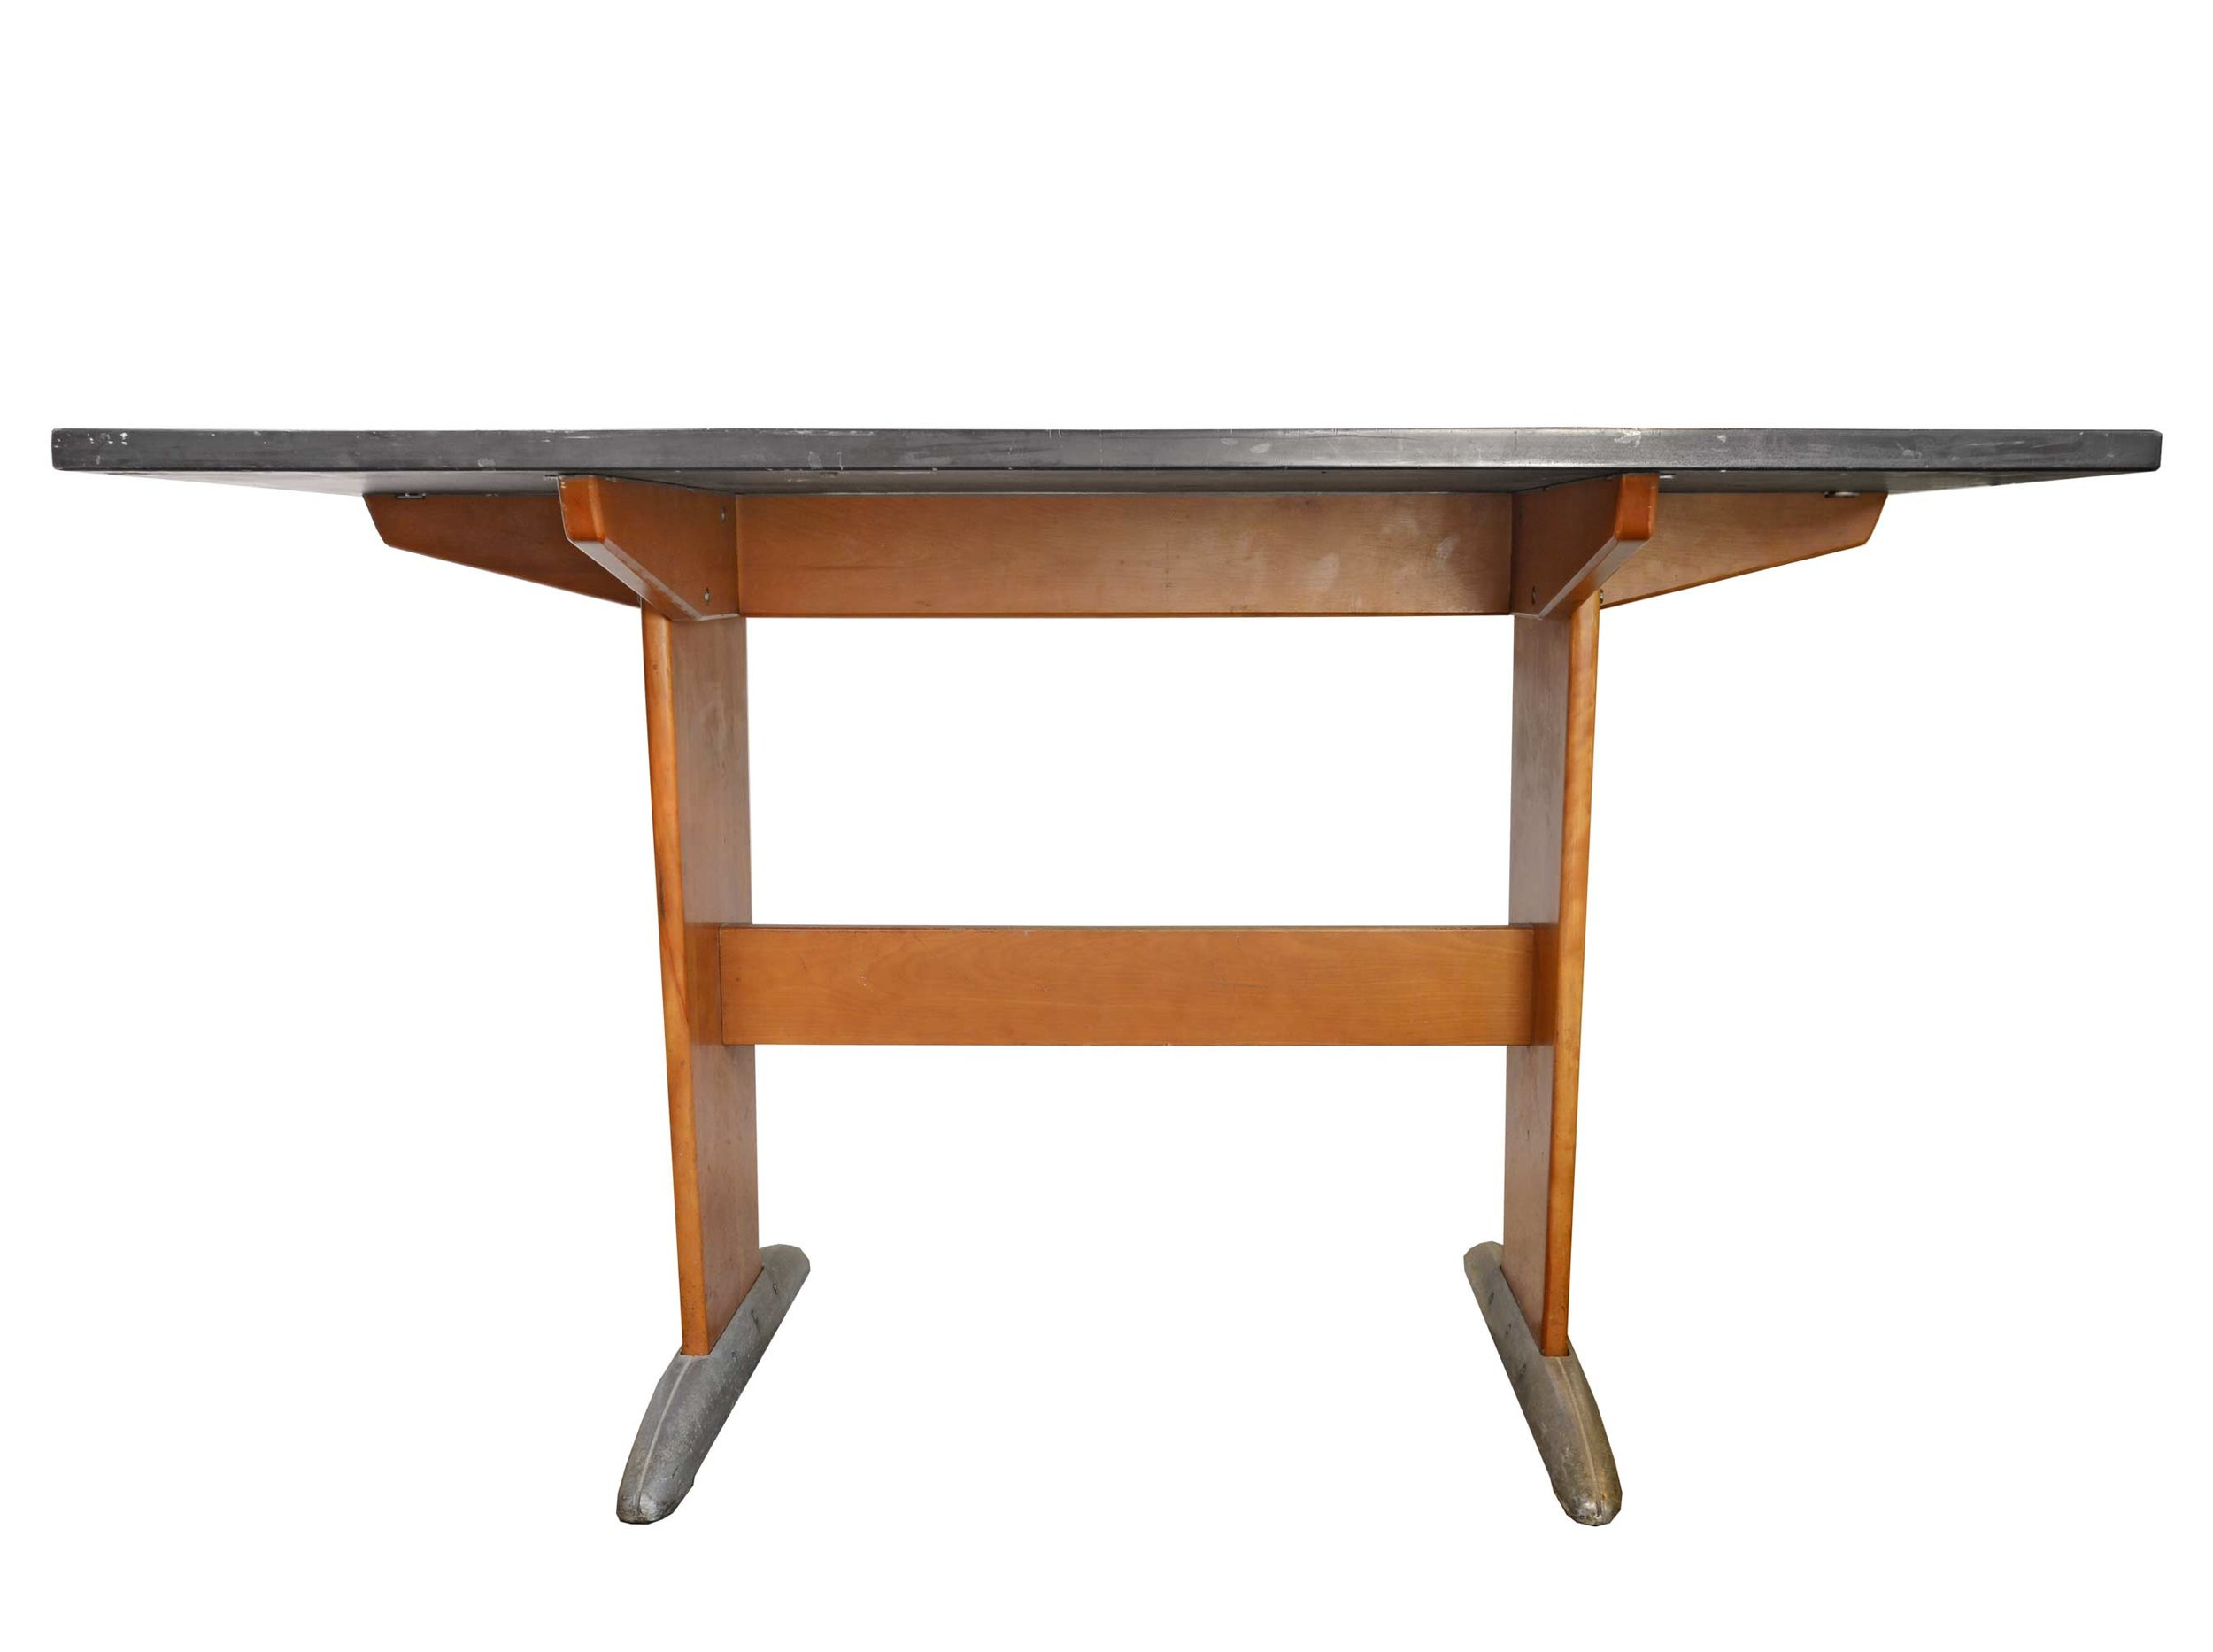 46699-lab-table-front.jpg